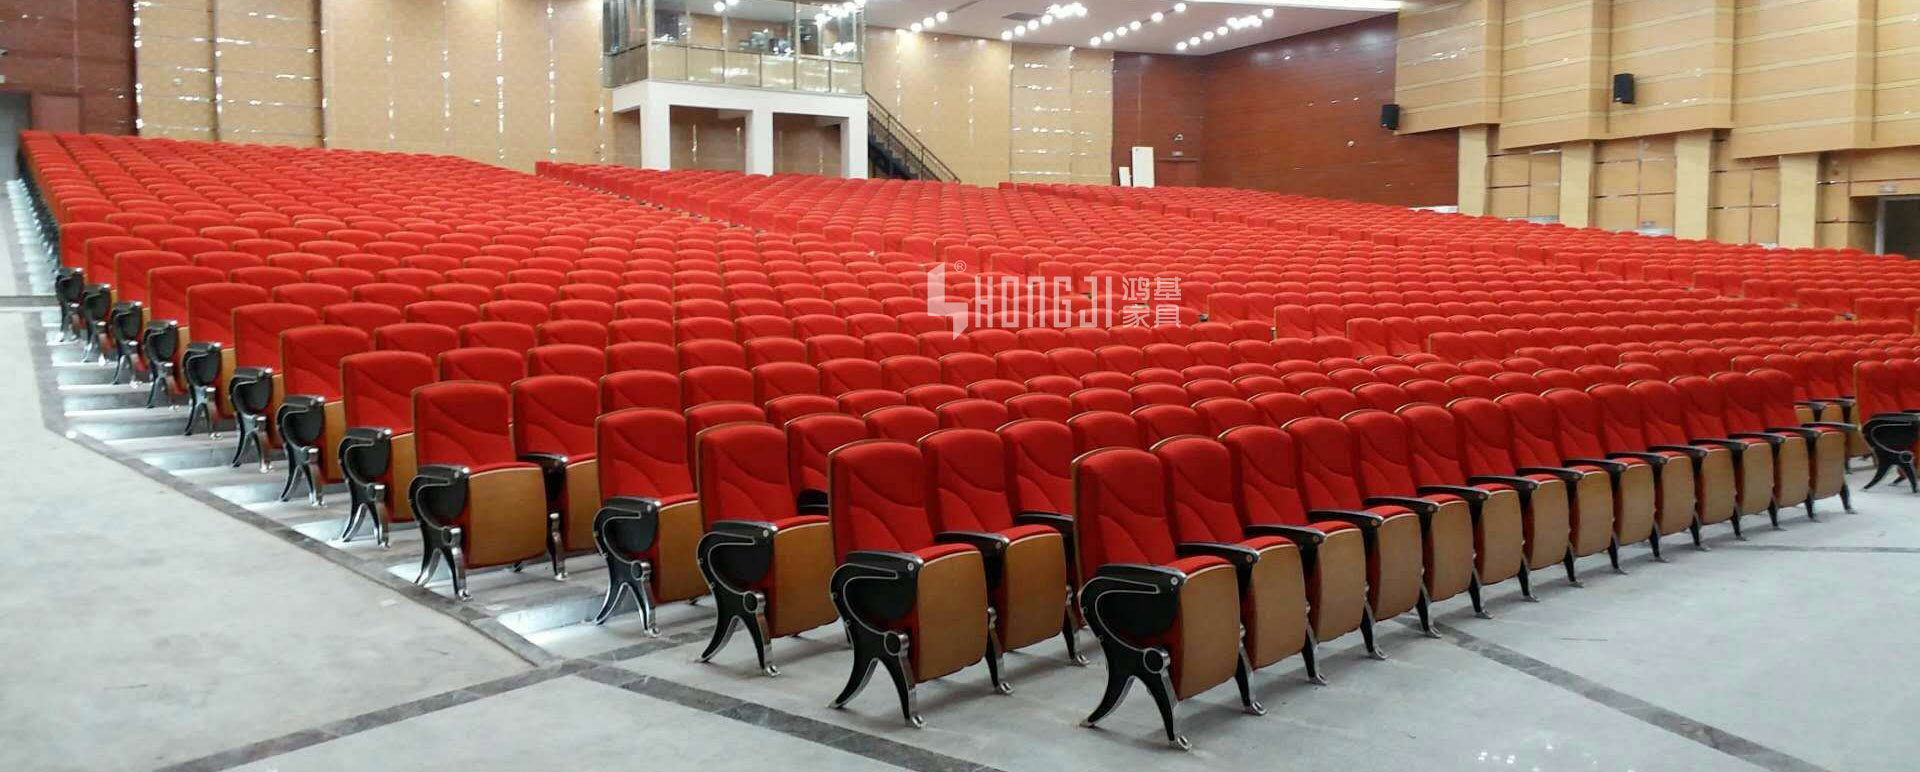 HONGJI real theater seats factory for sale-9